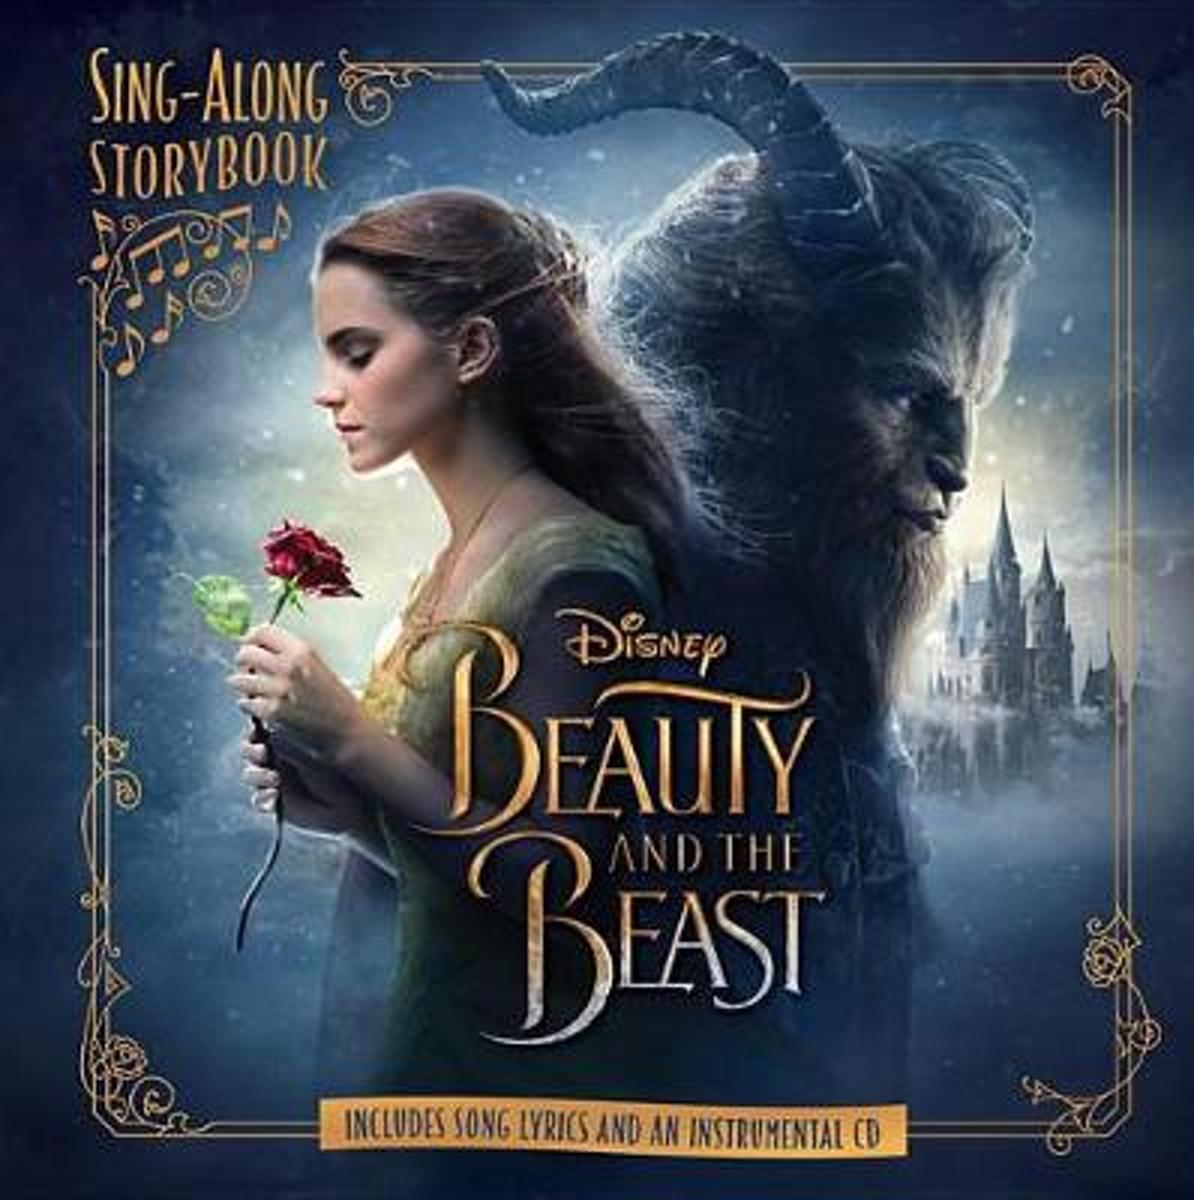 Beauty and the Beast Sing-Along Storybook